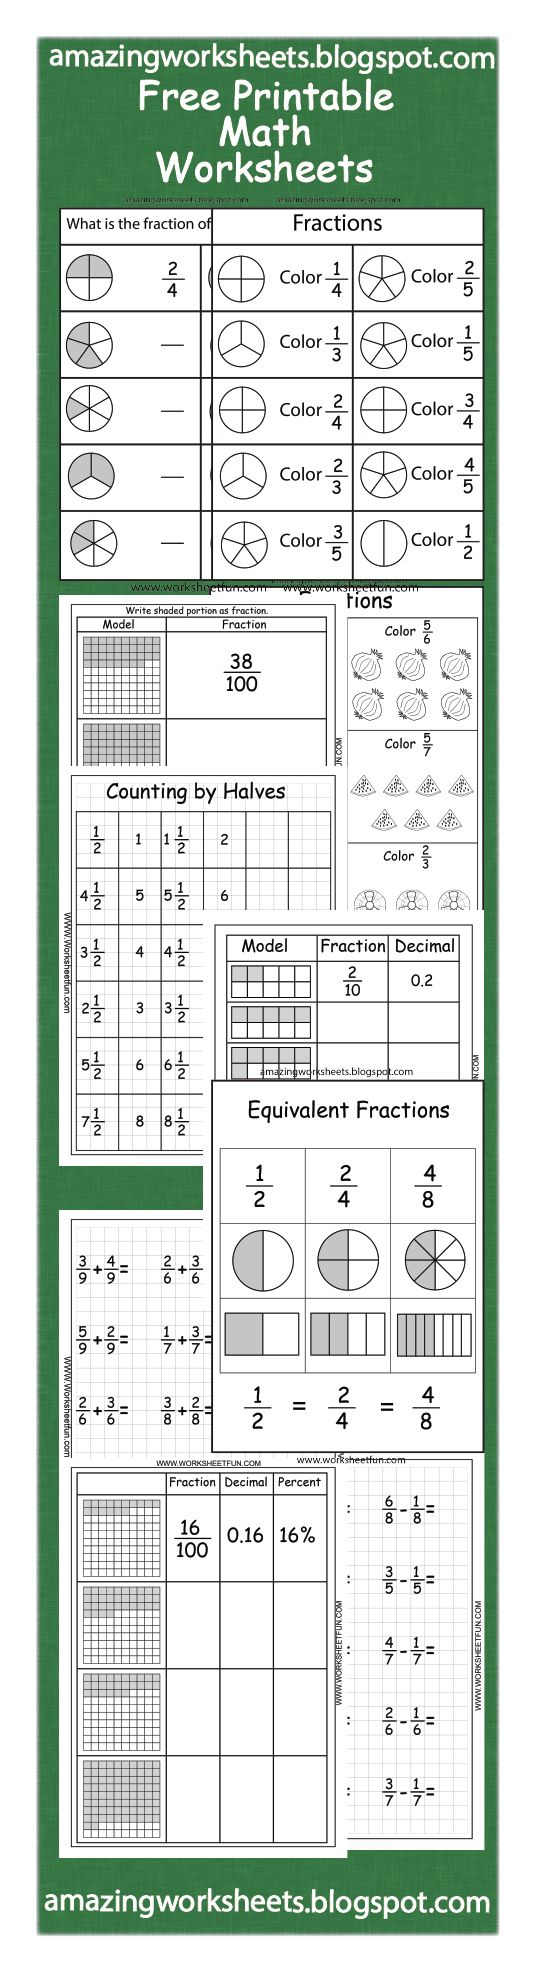 Free Printable Fractions Worksheets - www.worksheetfun.com